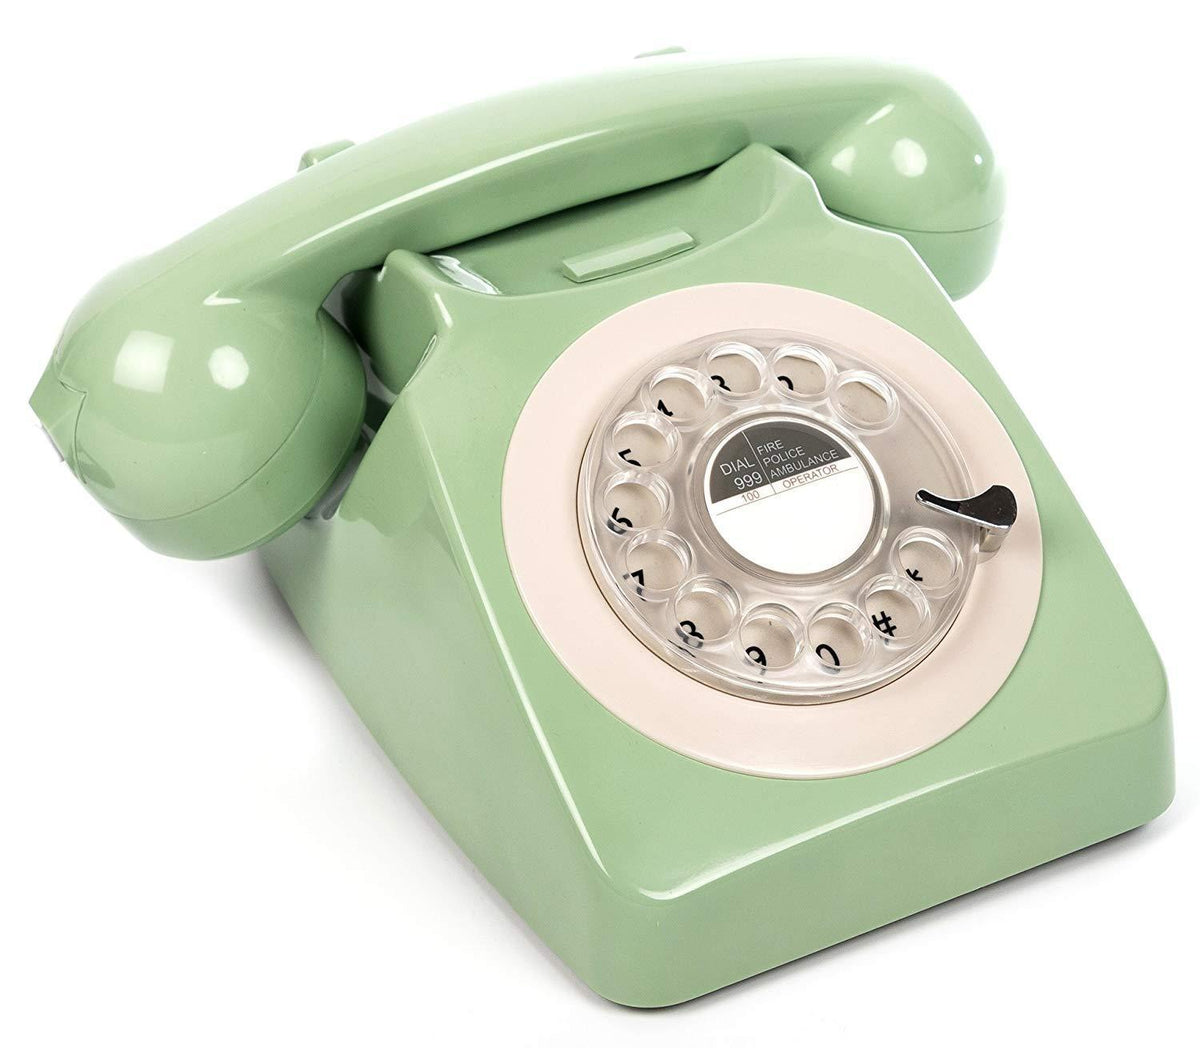 GPO 746 Rotary Hotel Phone Mint Green